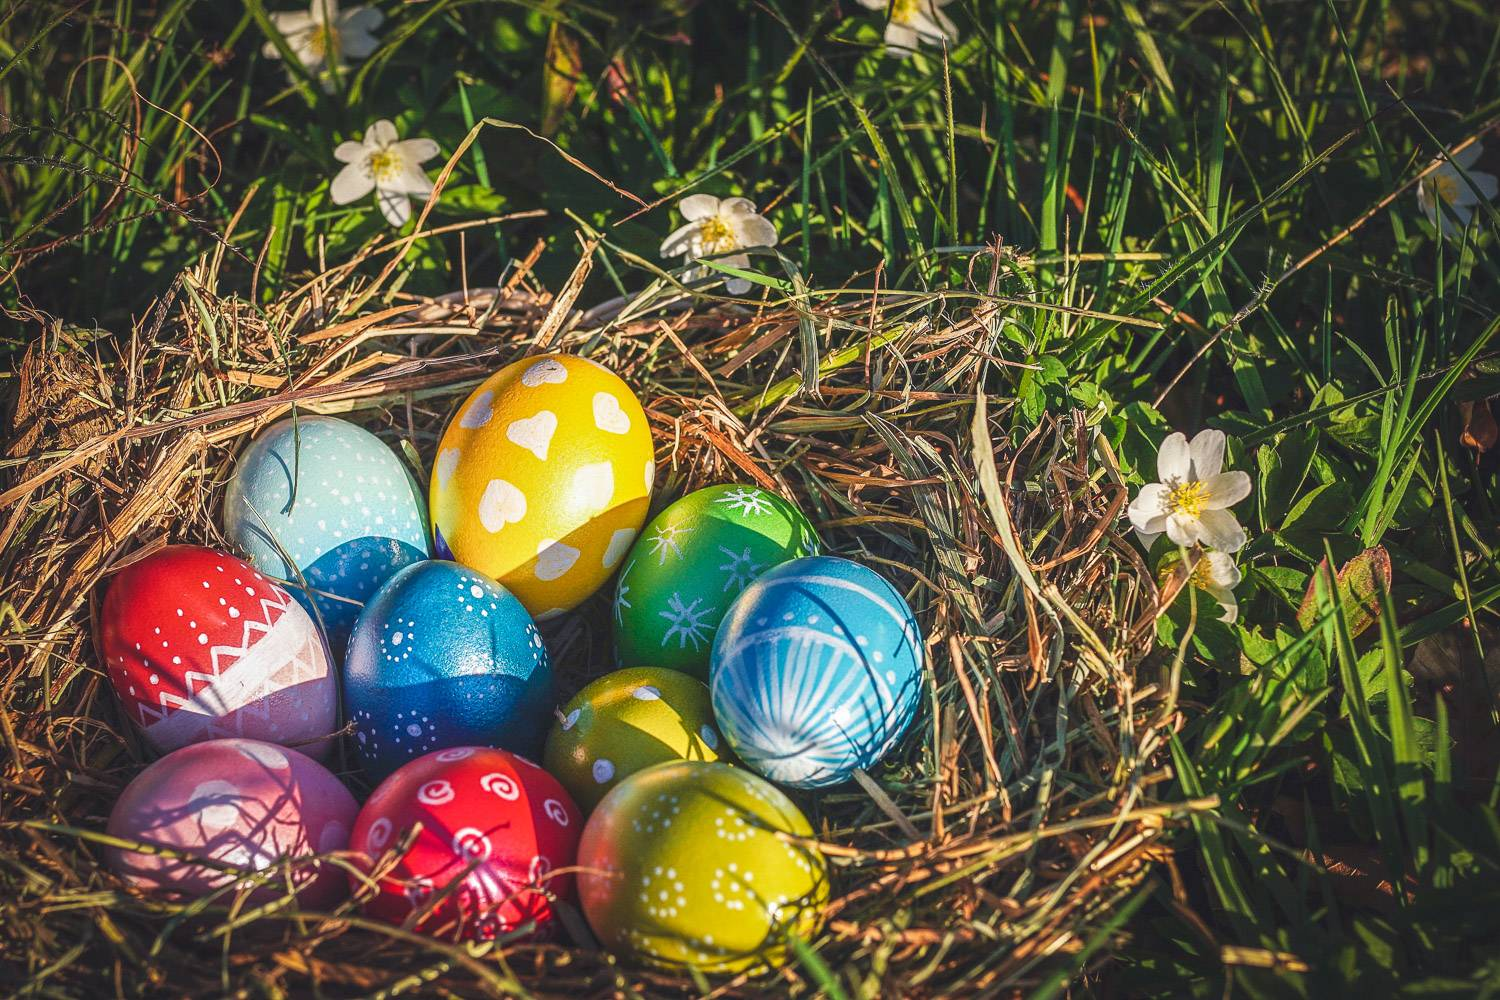 Image of a nest on the grass containing chocolate Easter eggs